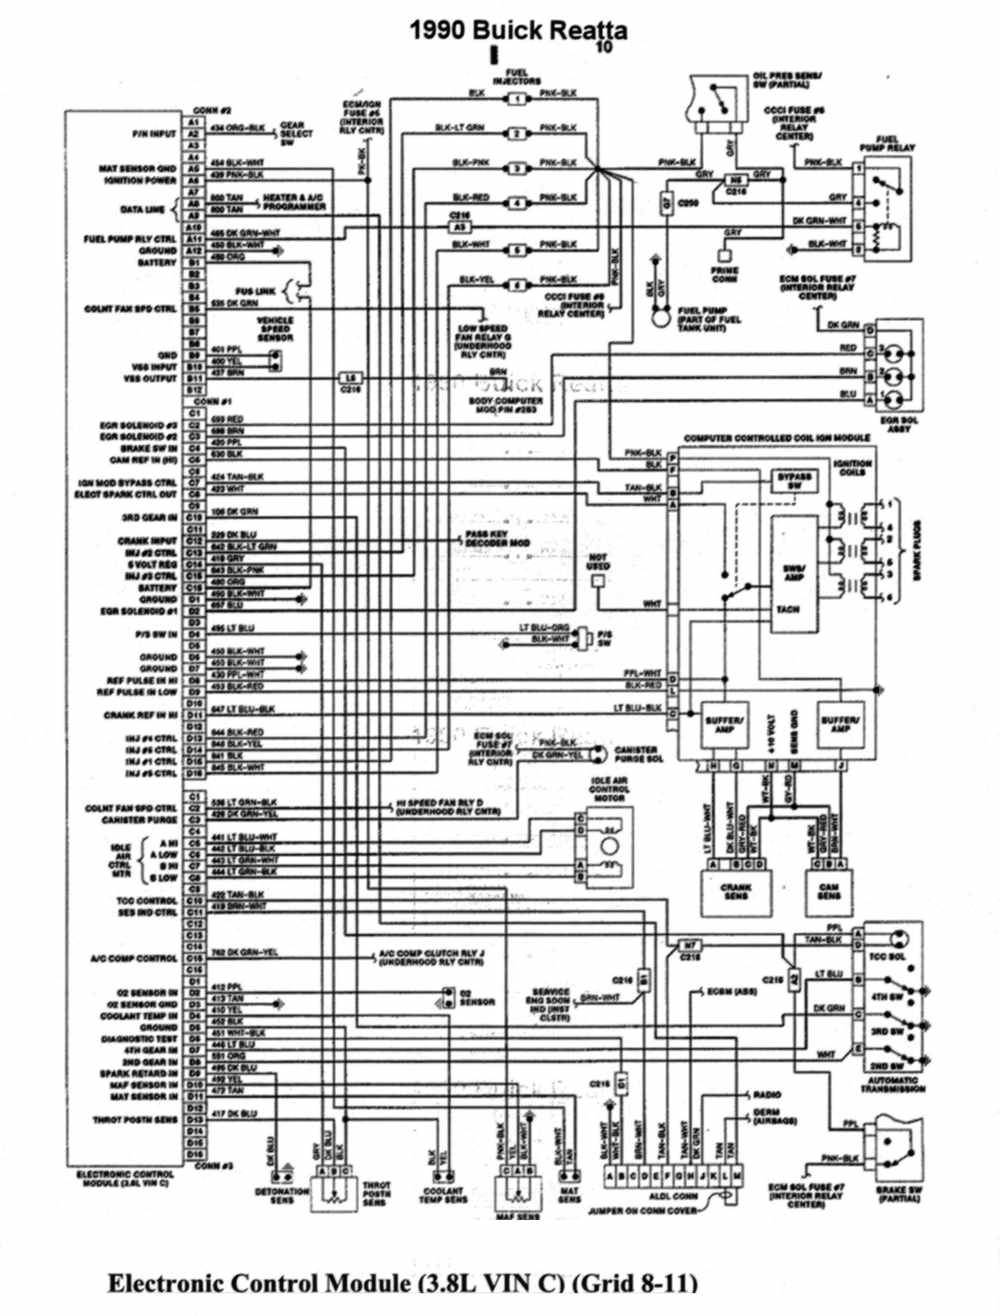 hight resolution of electronic wiring diagram of 1990 buick reatta